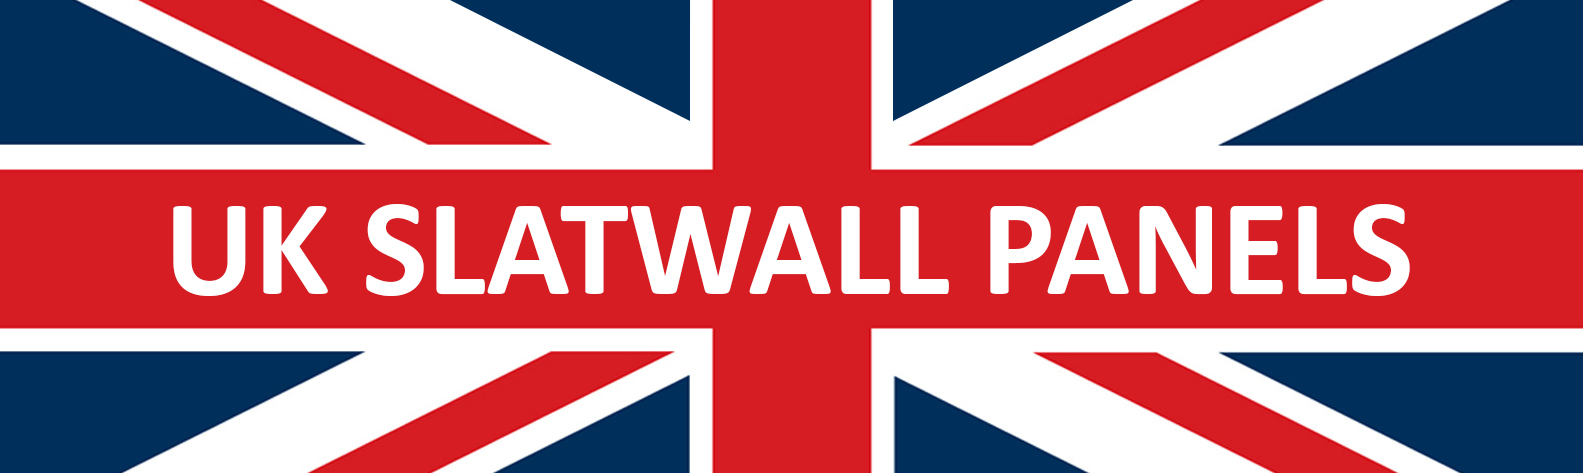 UK Slatwall Panels - 8ft Slatwall